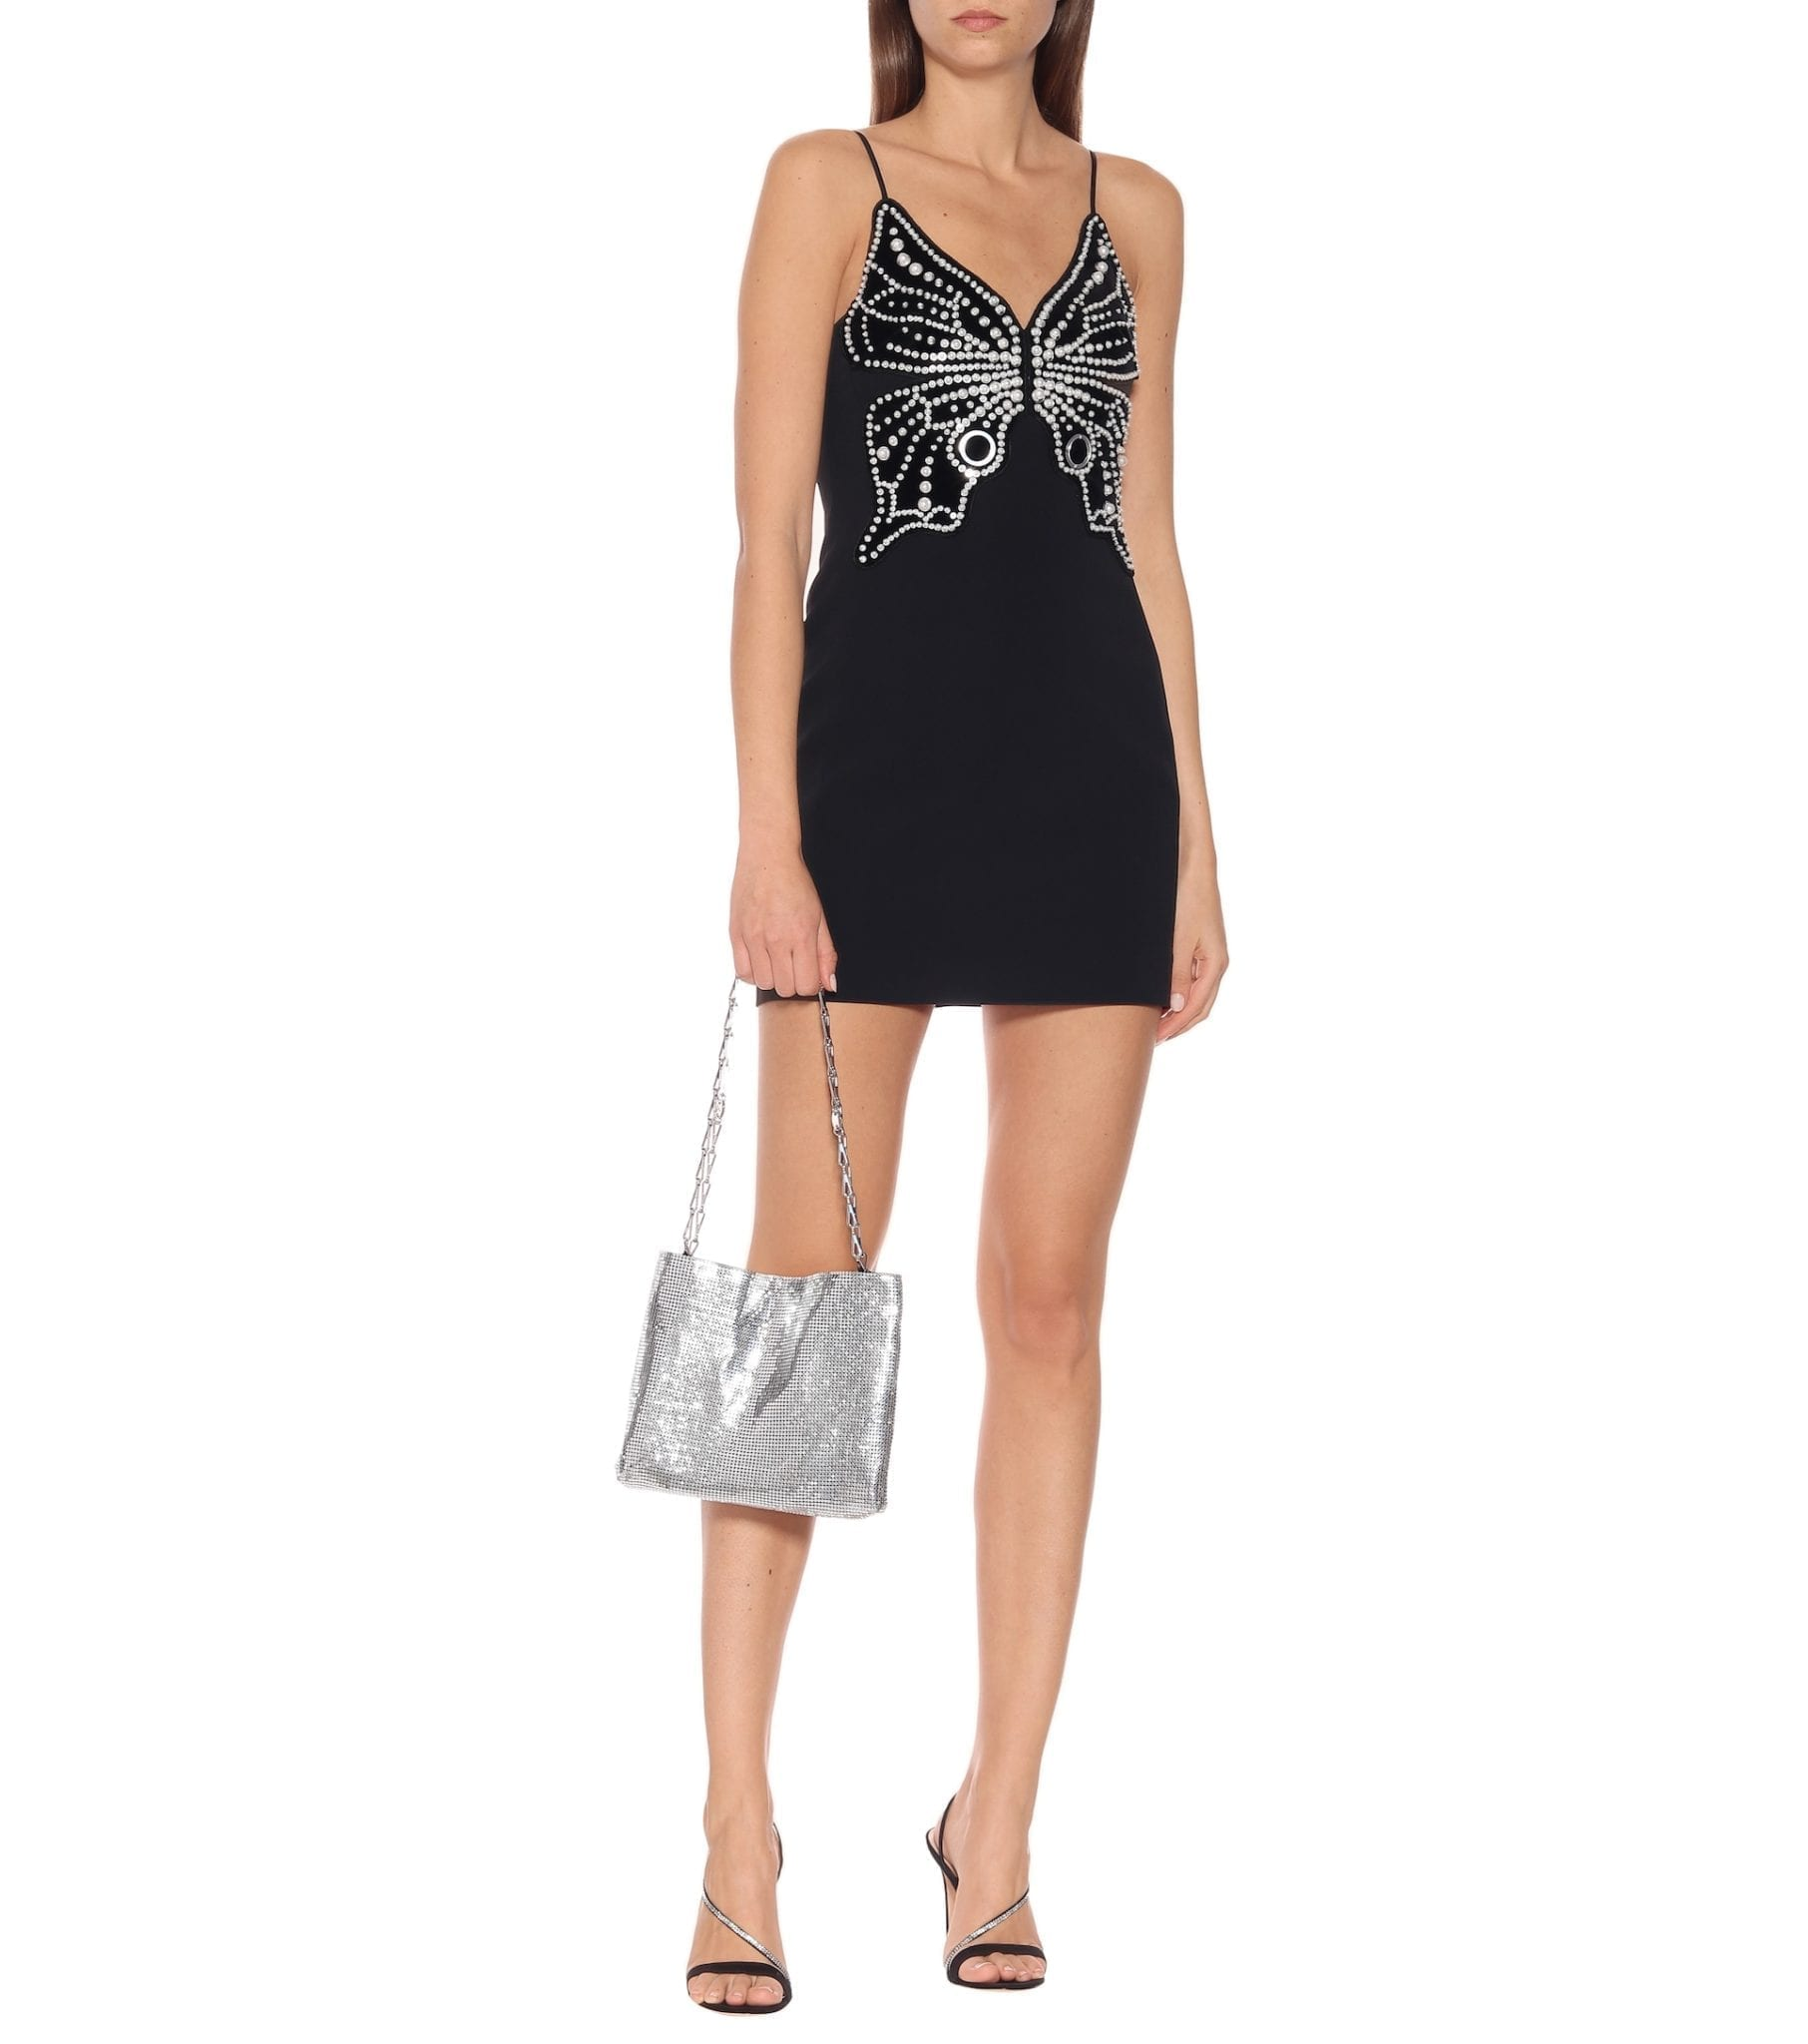 DAVID KOMA Butterfly-embellished Mini Dress